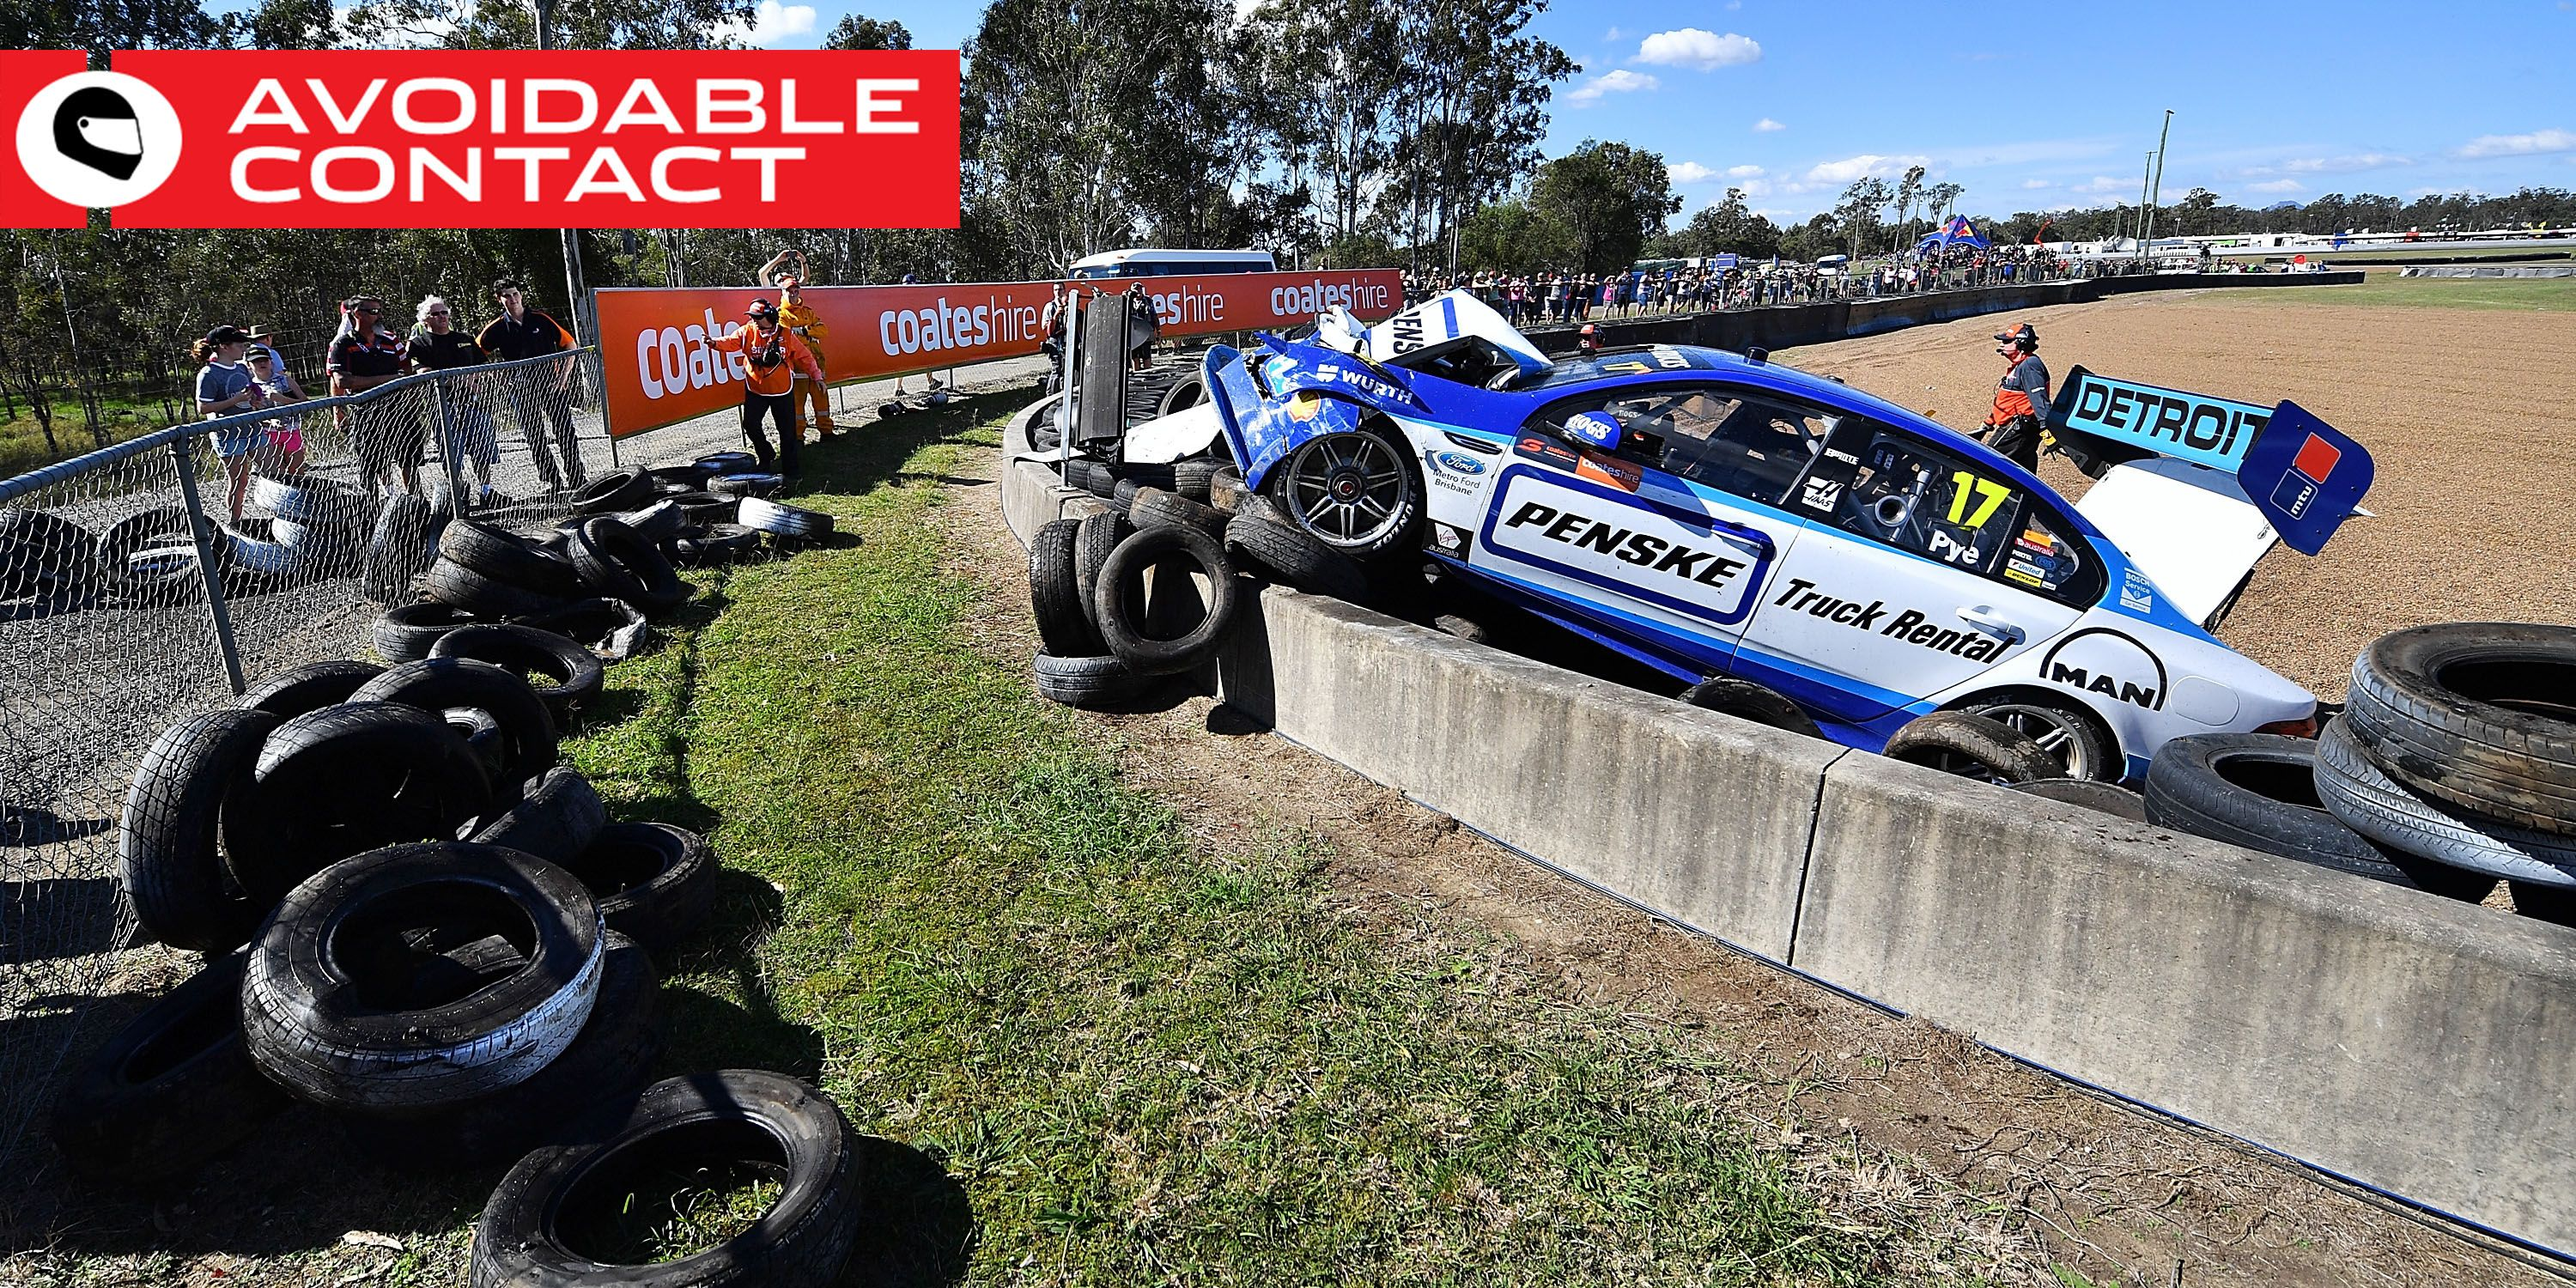 The Complete Idiot's Guide to Dealing With Brake Failure at